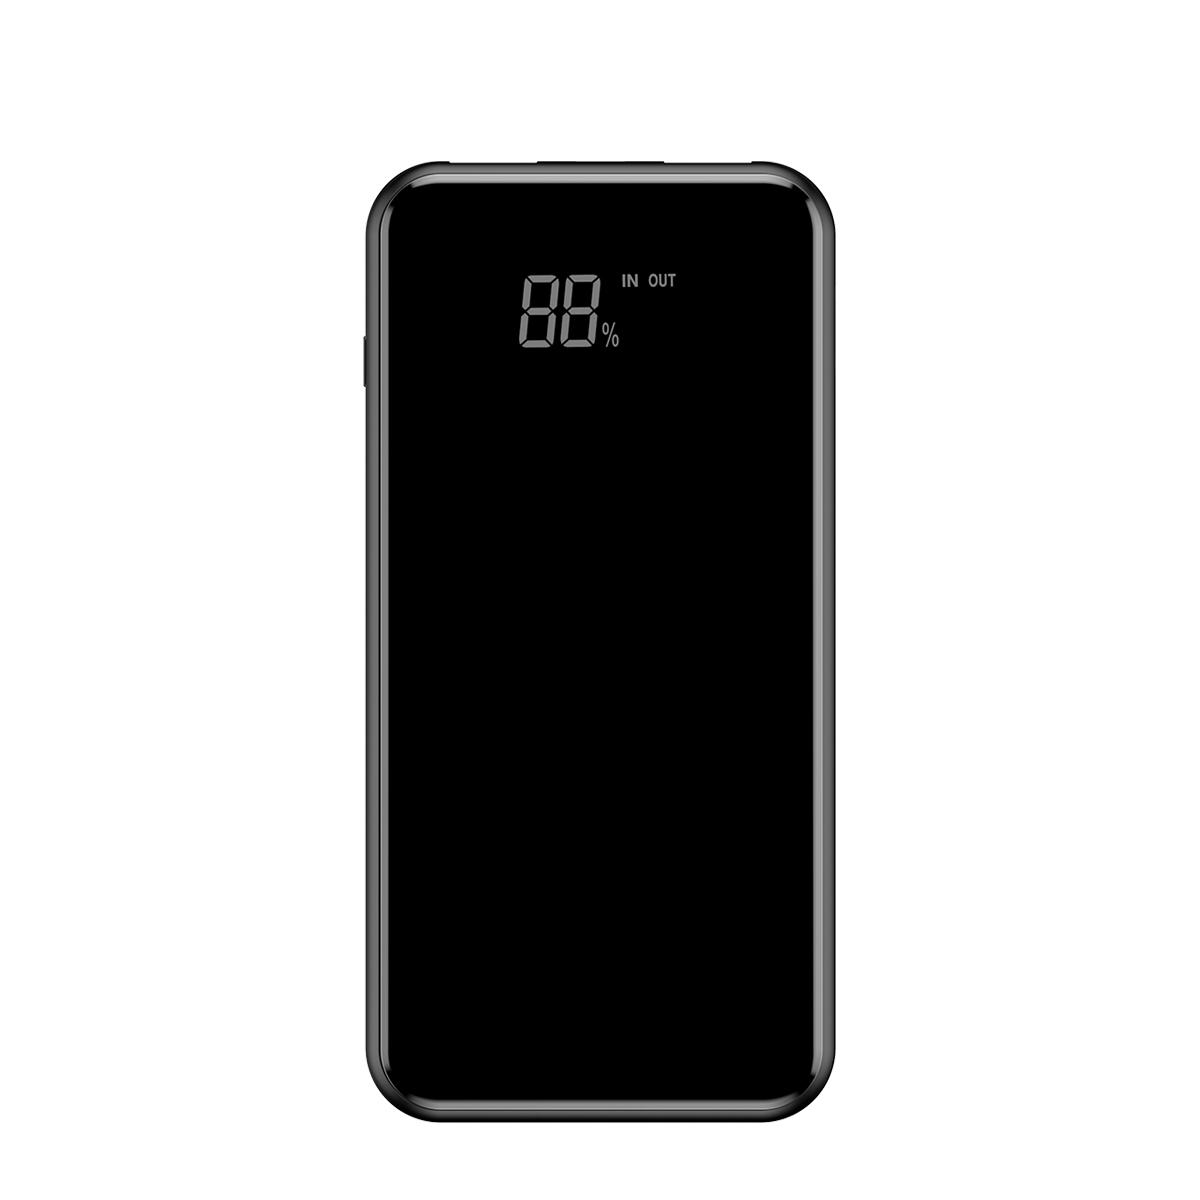 Портативное зарядное устройство Baseus full screen bracket wireless charge Power Bank 8000mAh black baseus timk series black aubasetk 01